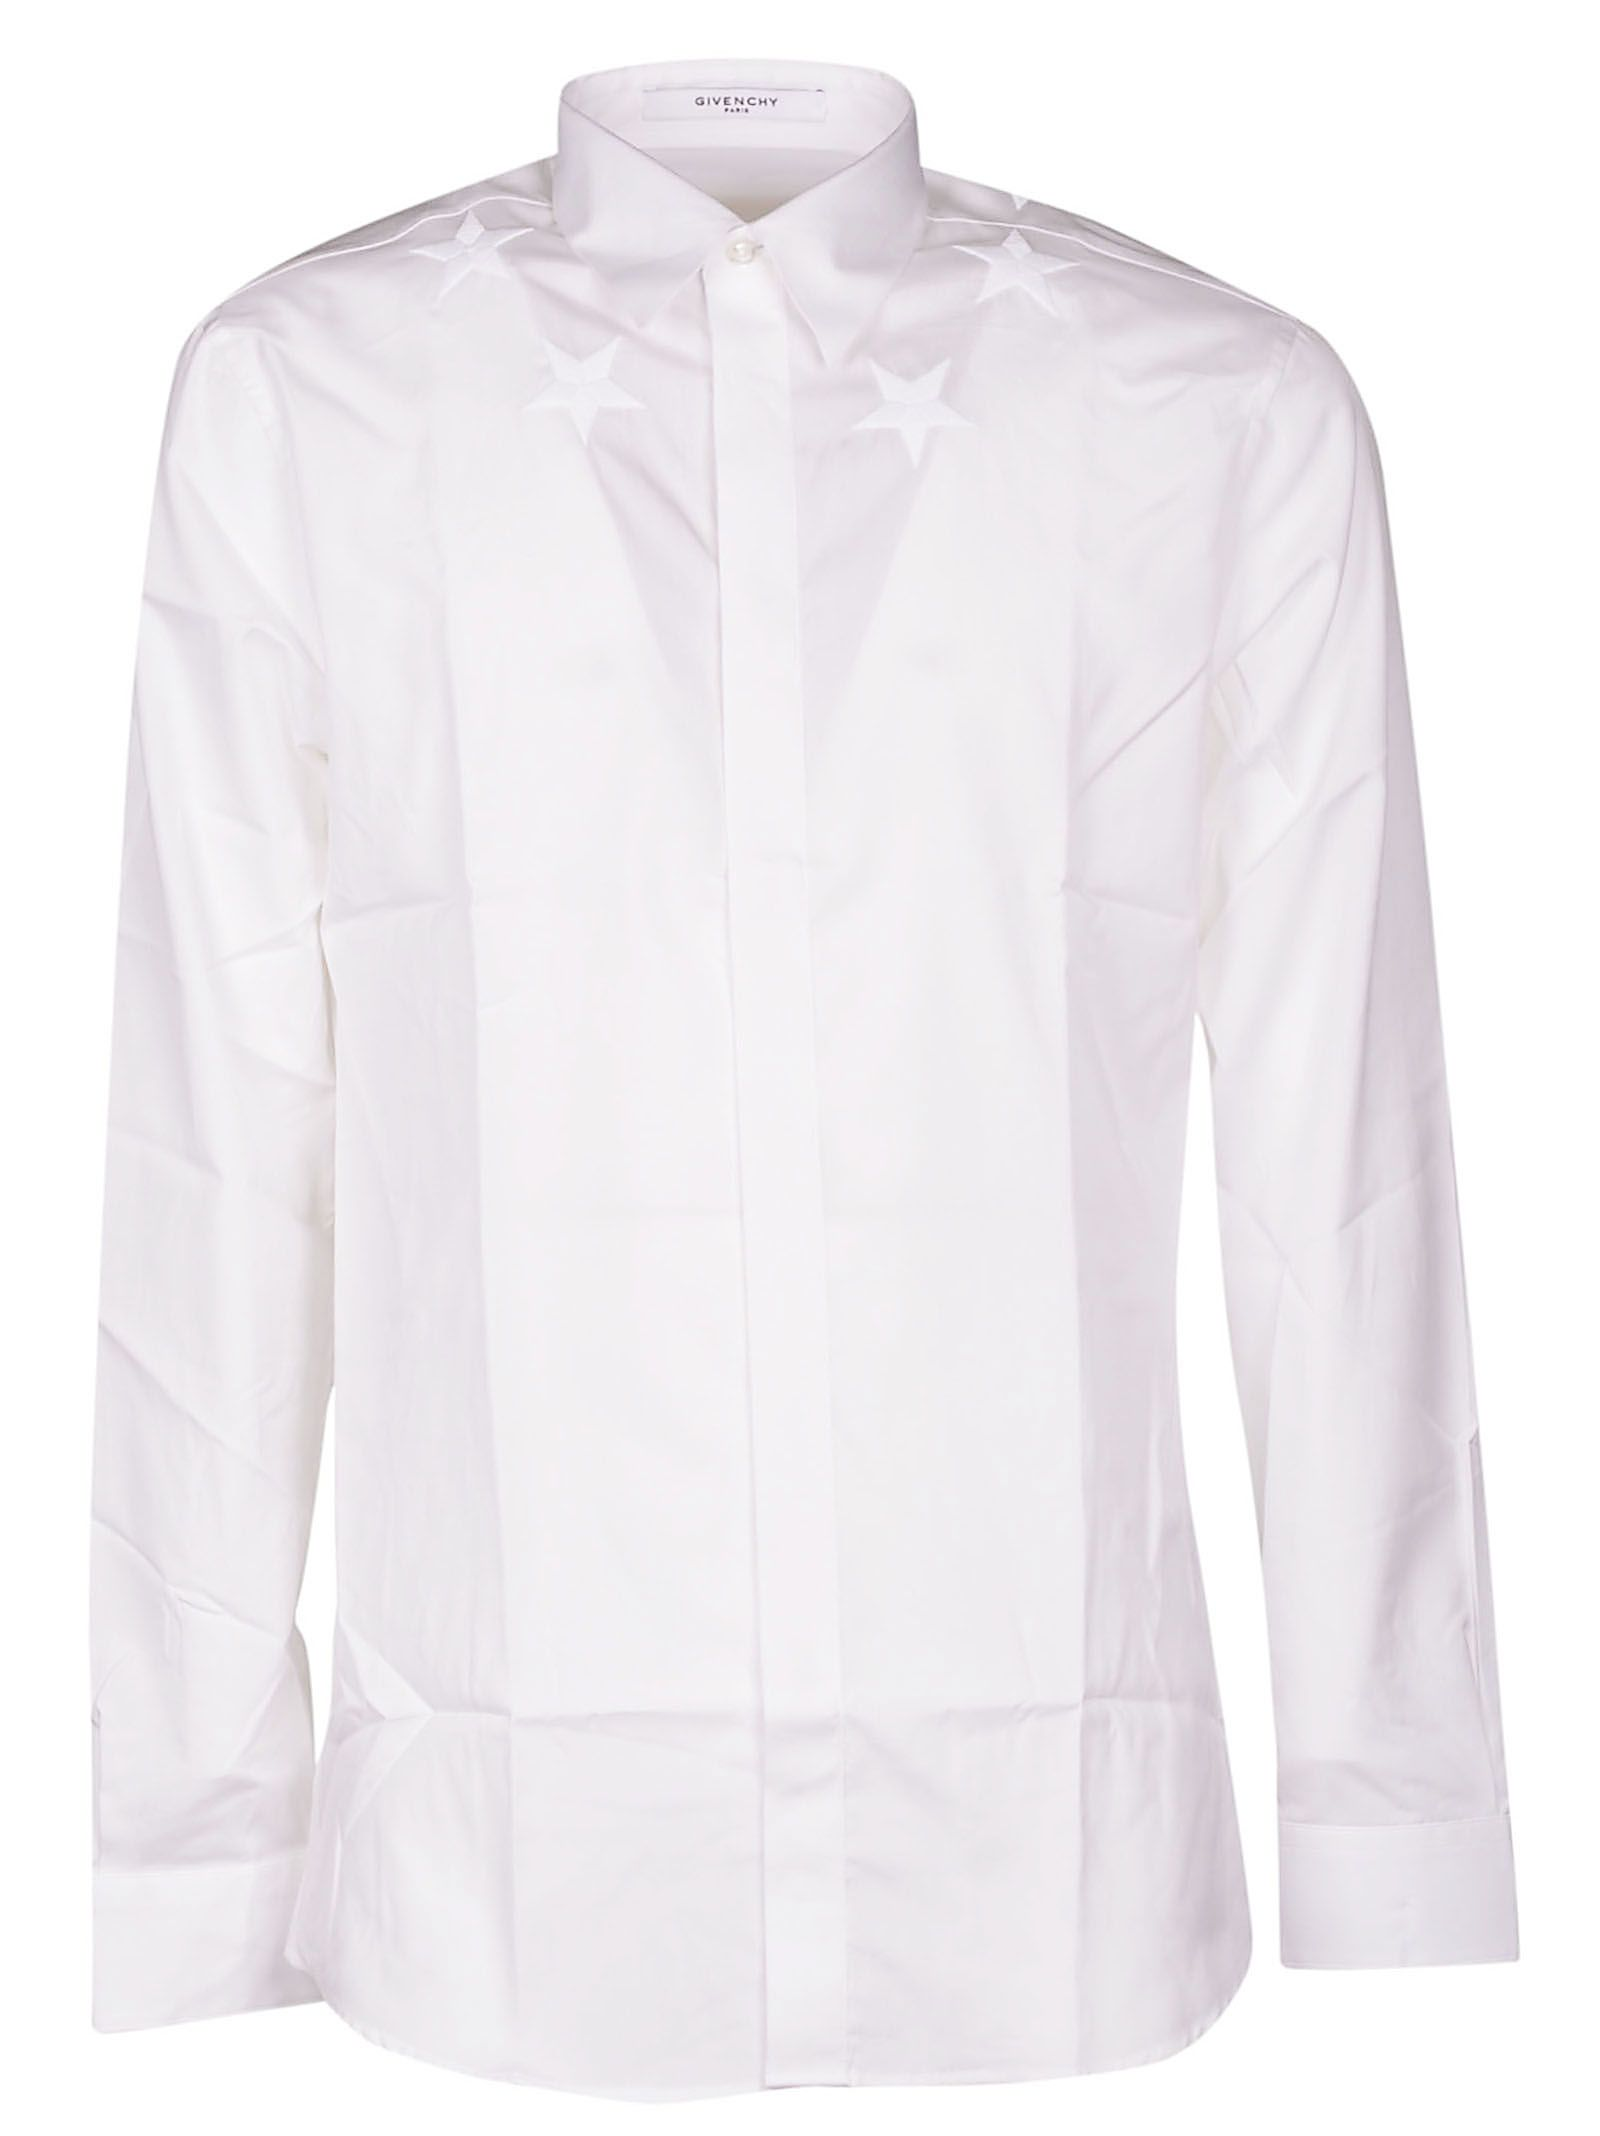 4a37ec9010e Givenchy Givenchy Embroidered Stars Shirt - White - 10851779